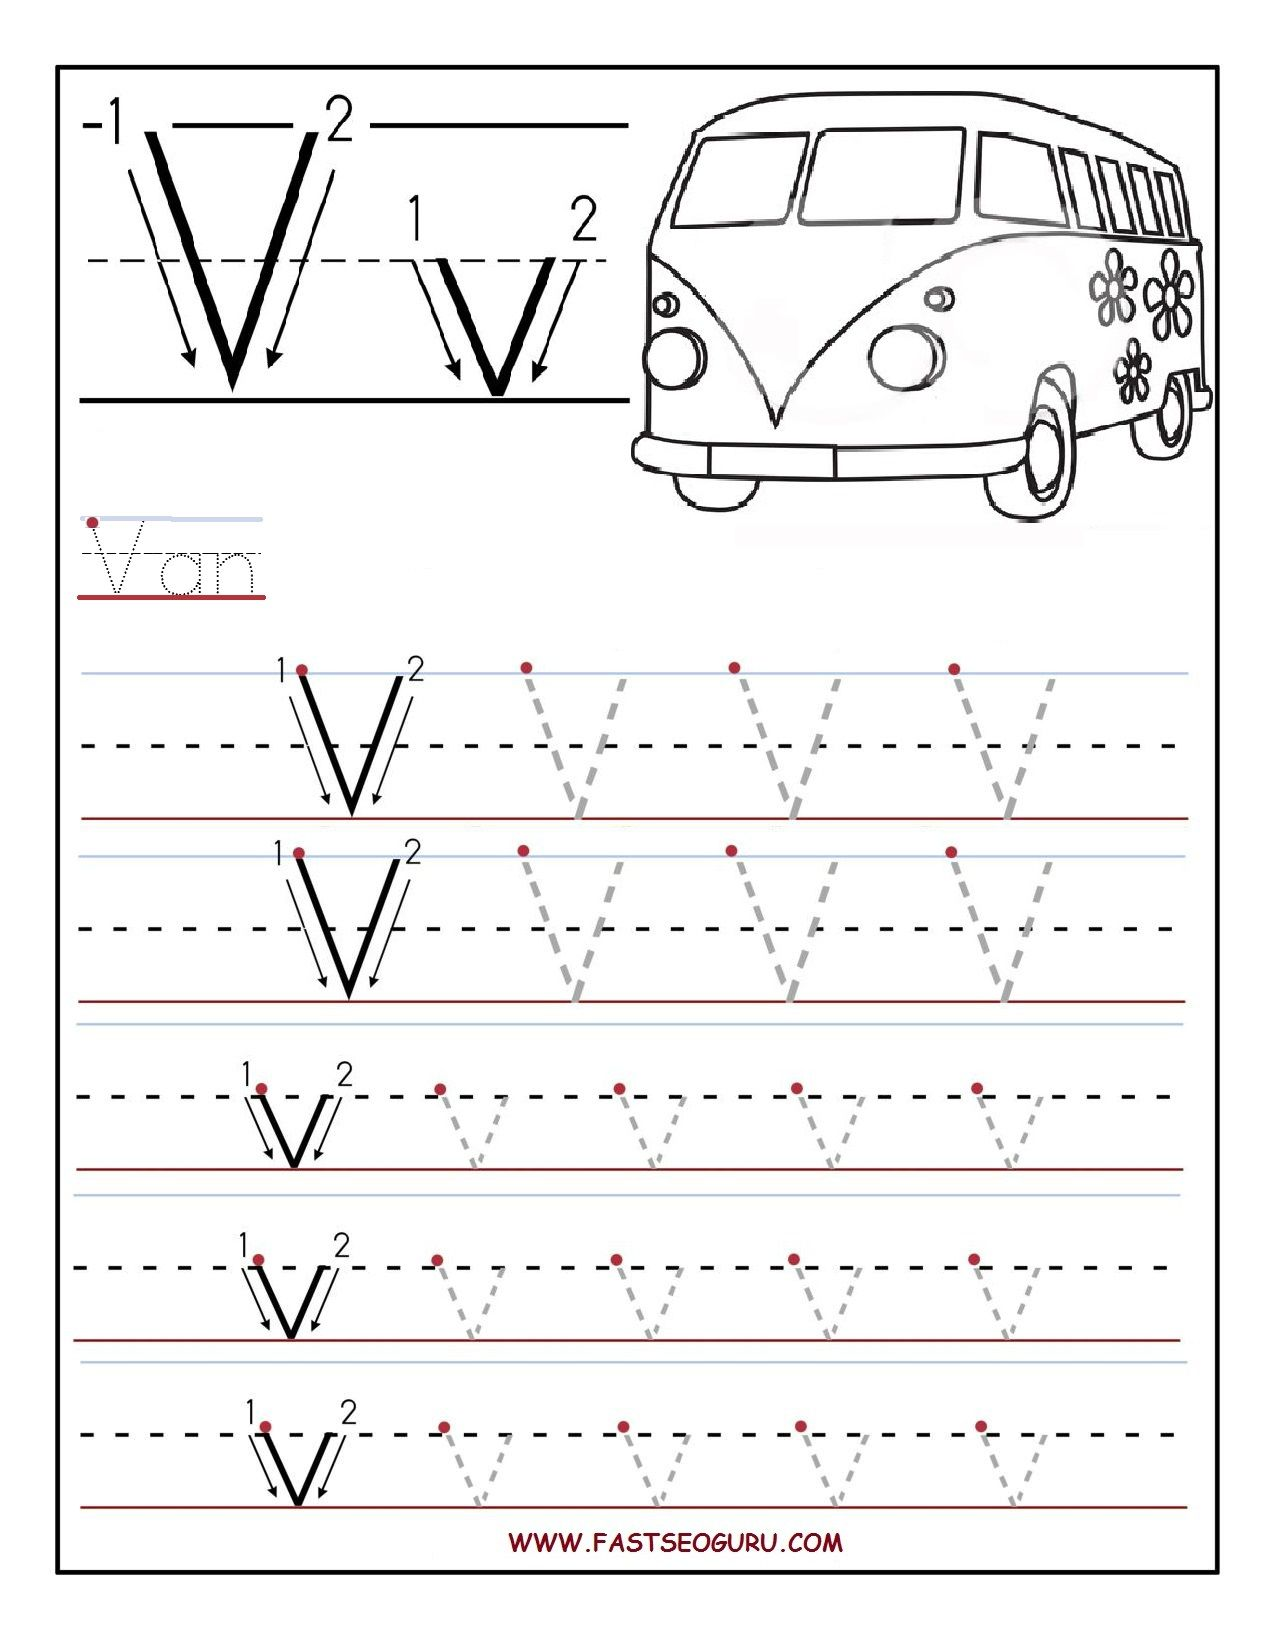 Worksheet Letter V Worksheet Grass Fedjp Worksheet Study